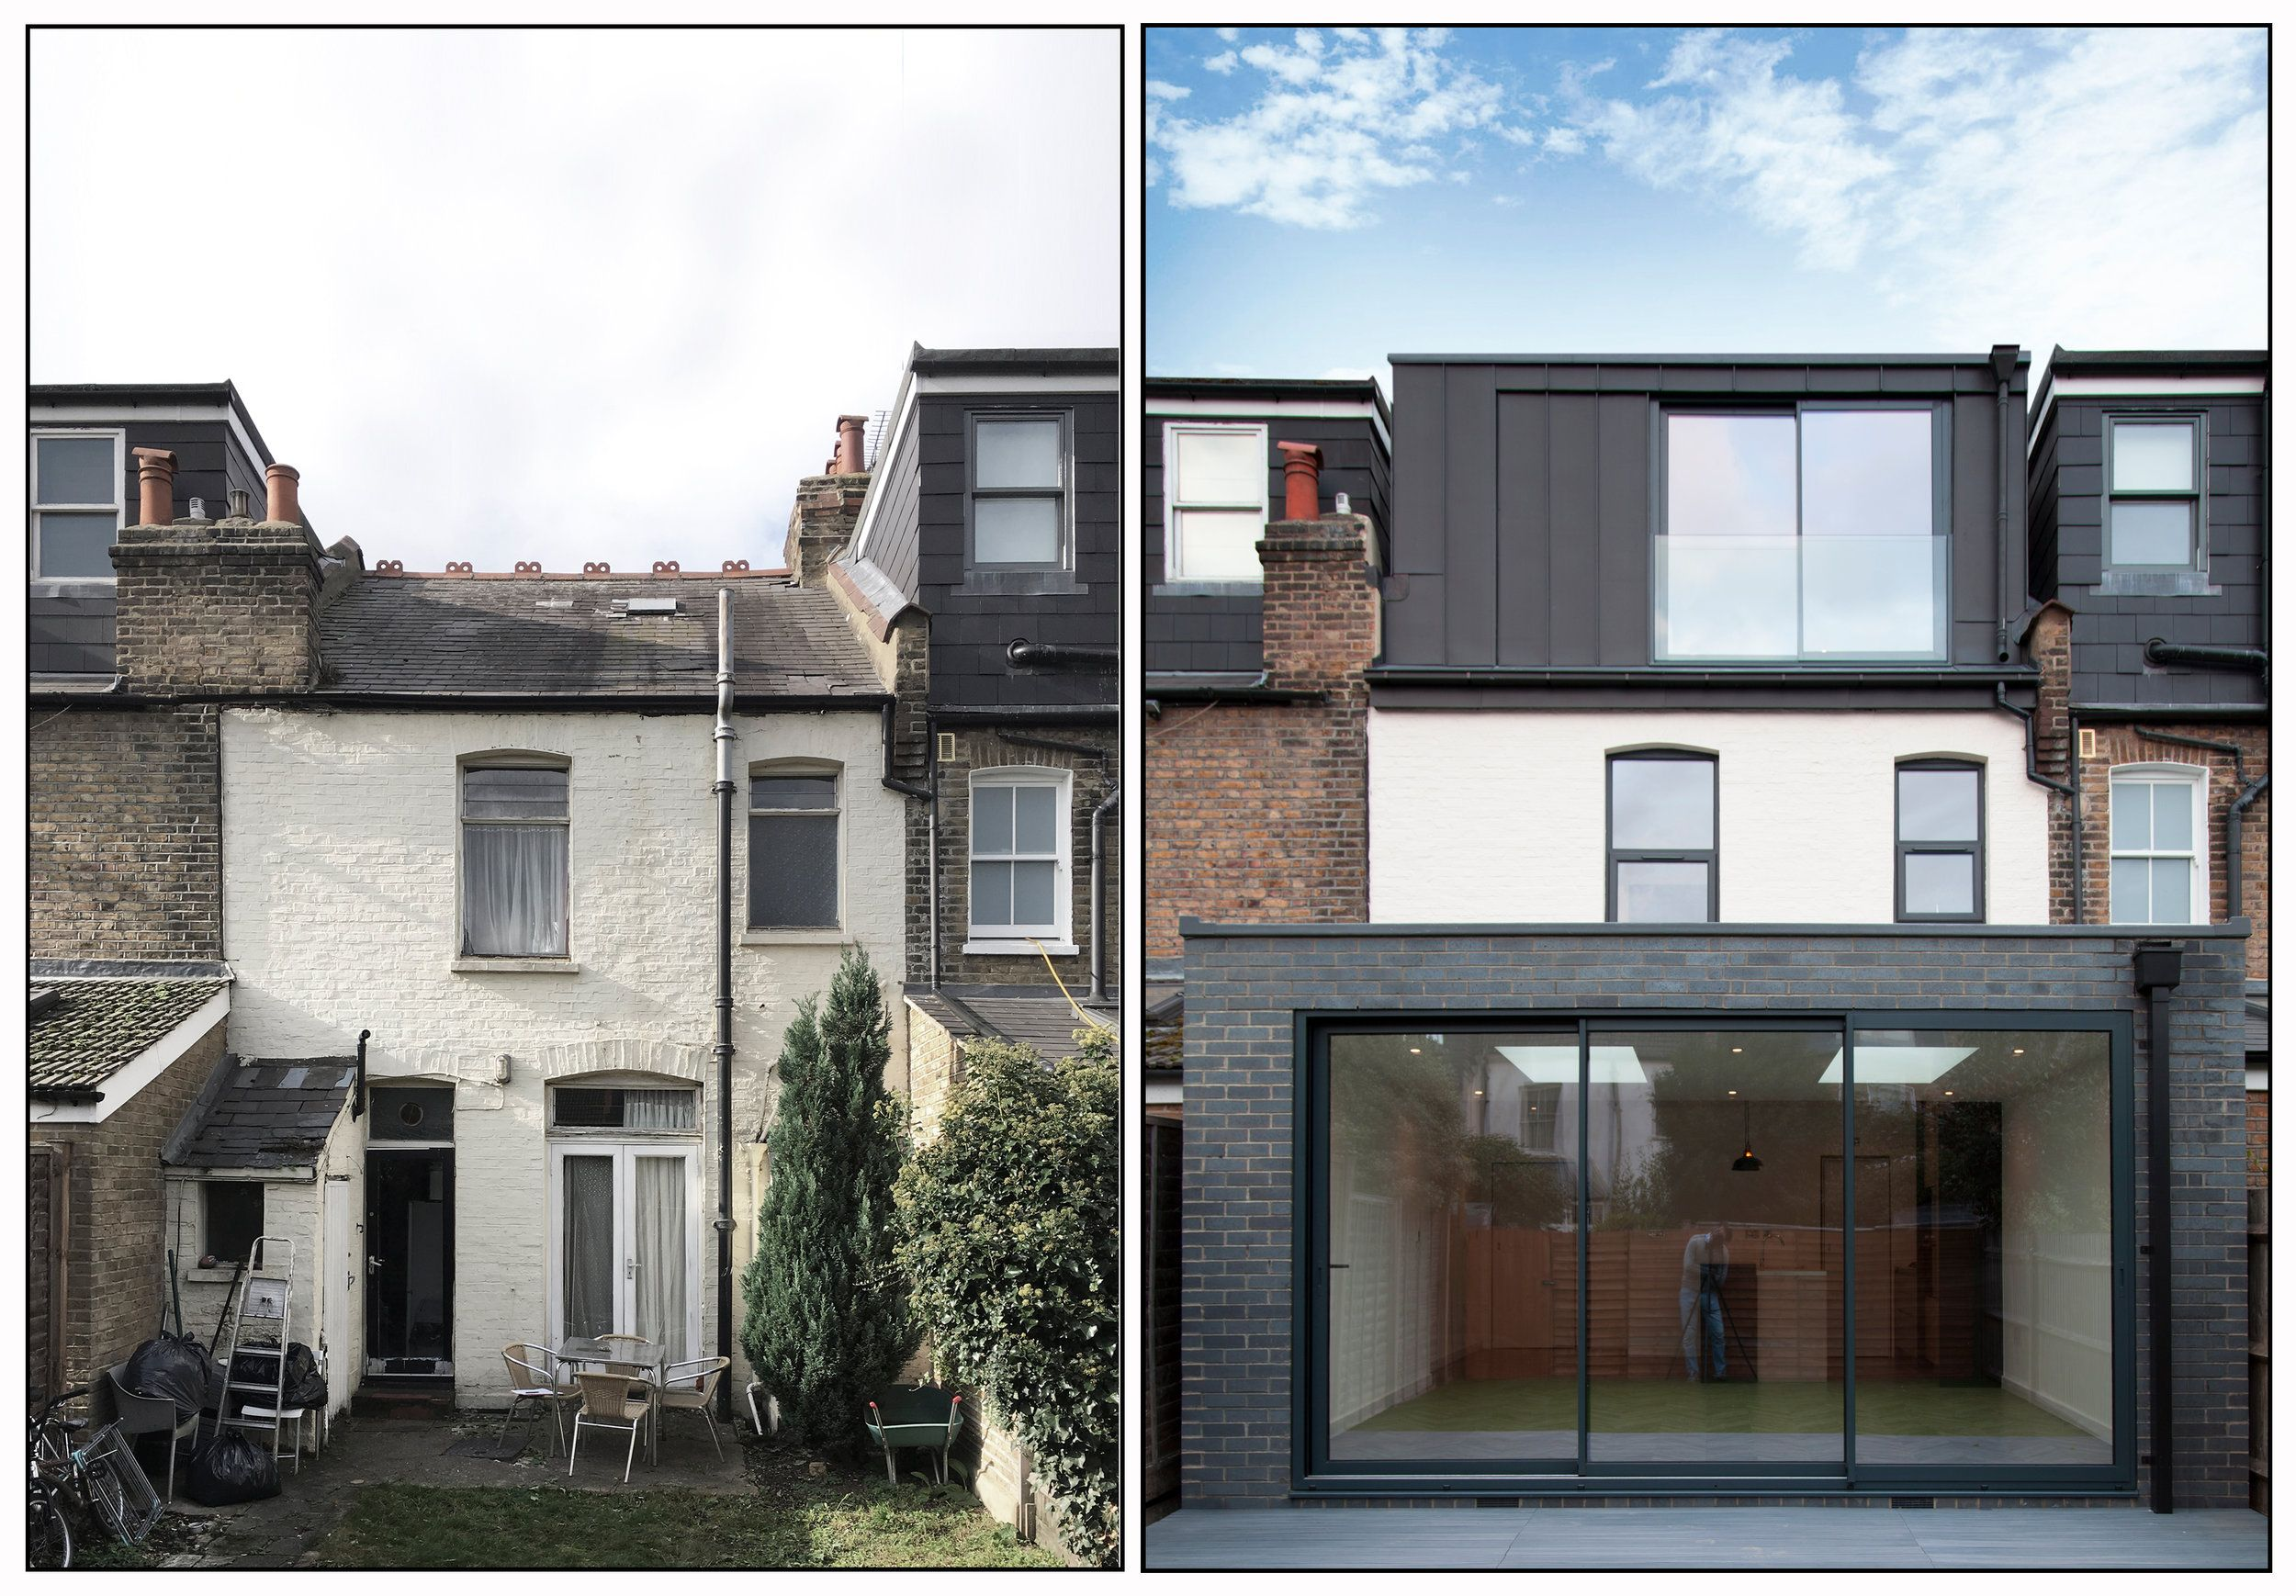 Ground And Loft Floor Extension Under Permitted Development Rights In London A L E Z Architects House Extension Design House Extensions Loft Conversion